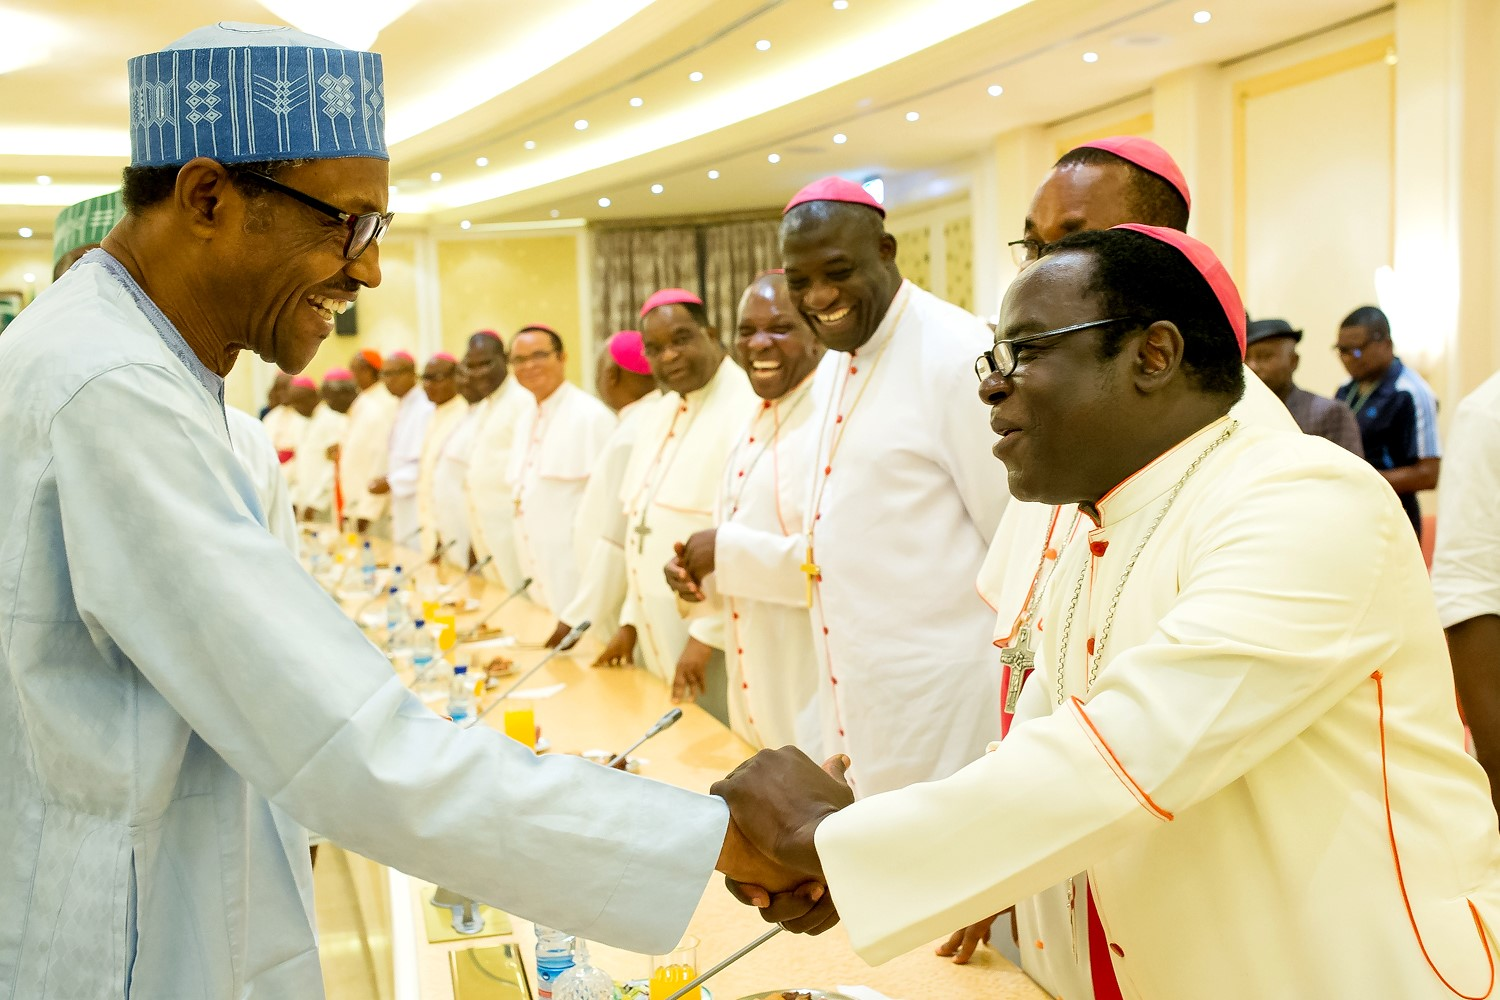 President Buhari greets Bishop Matthew Kukah; photo courtesy of the Catholic Bishops' Conference of Nigeria